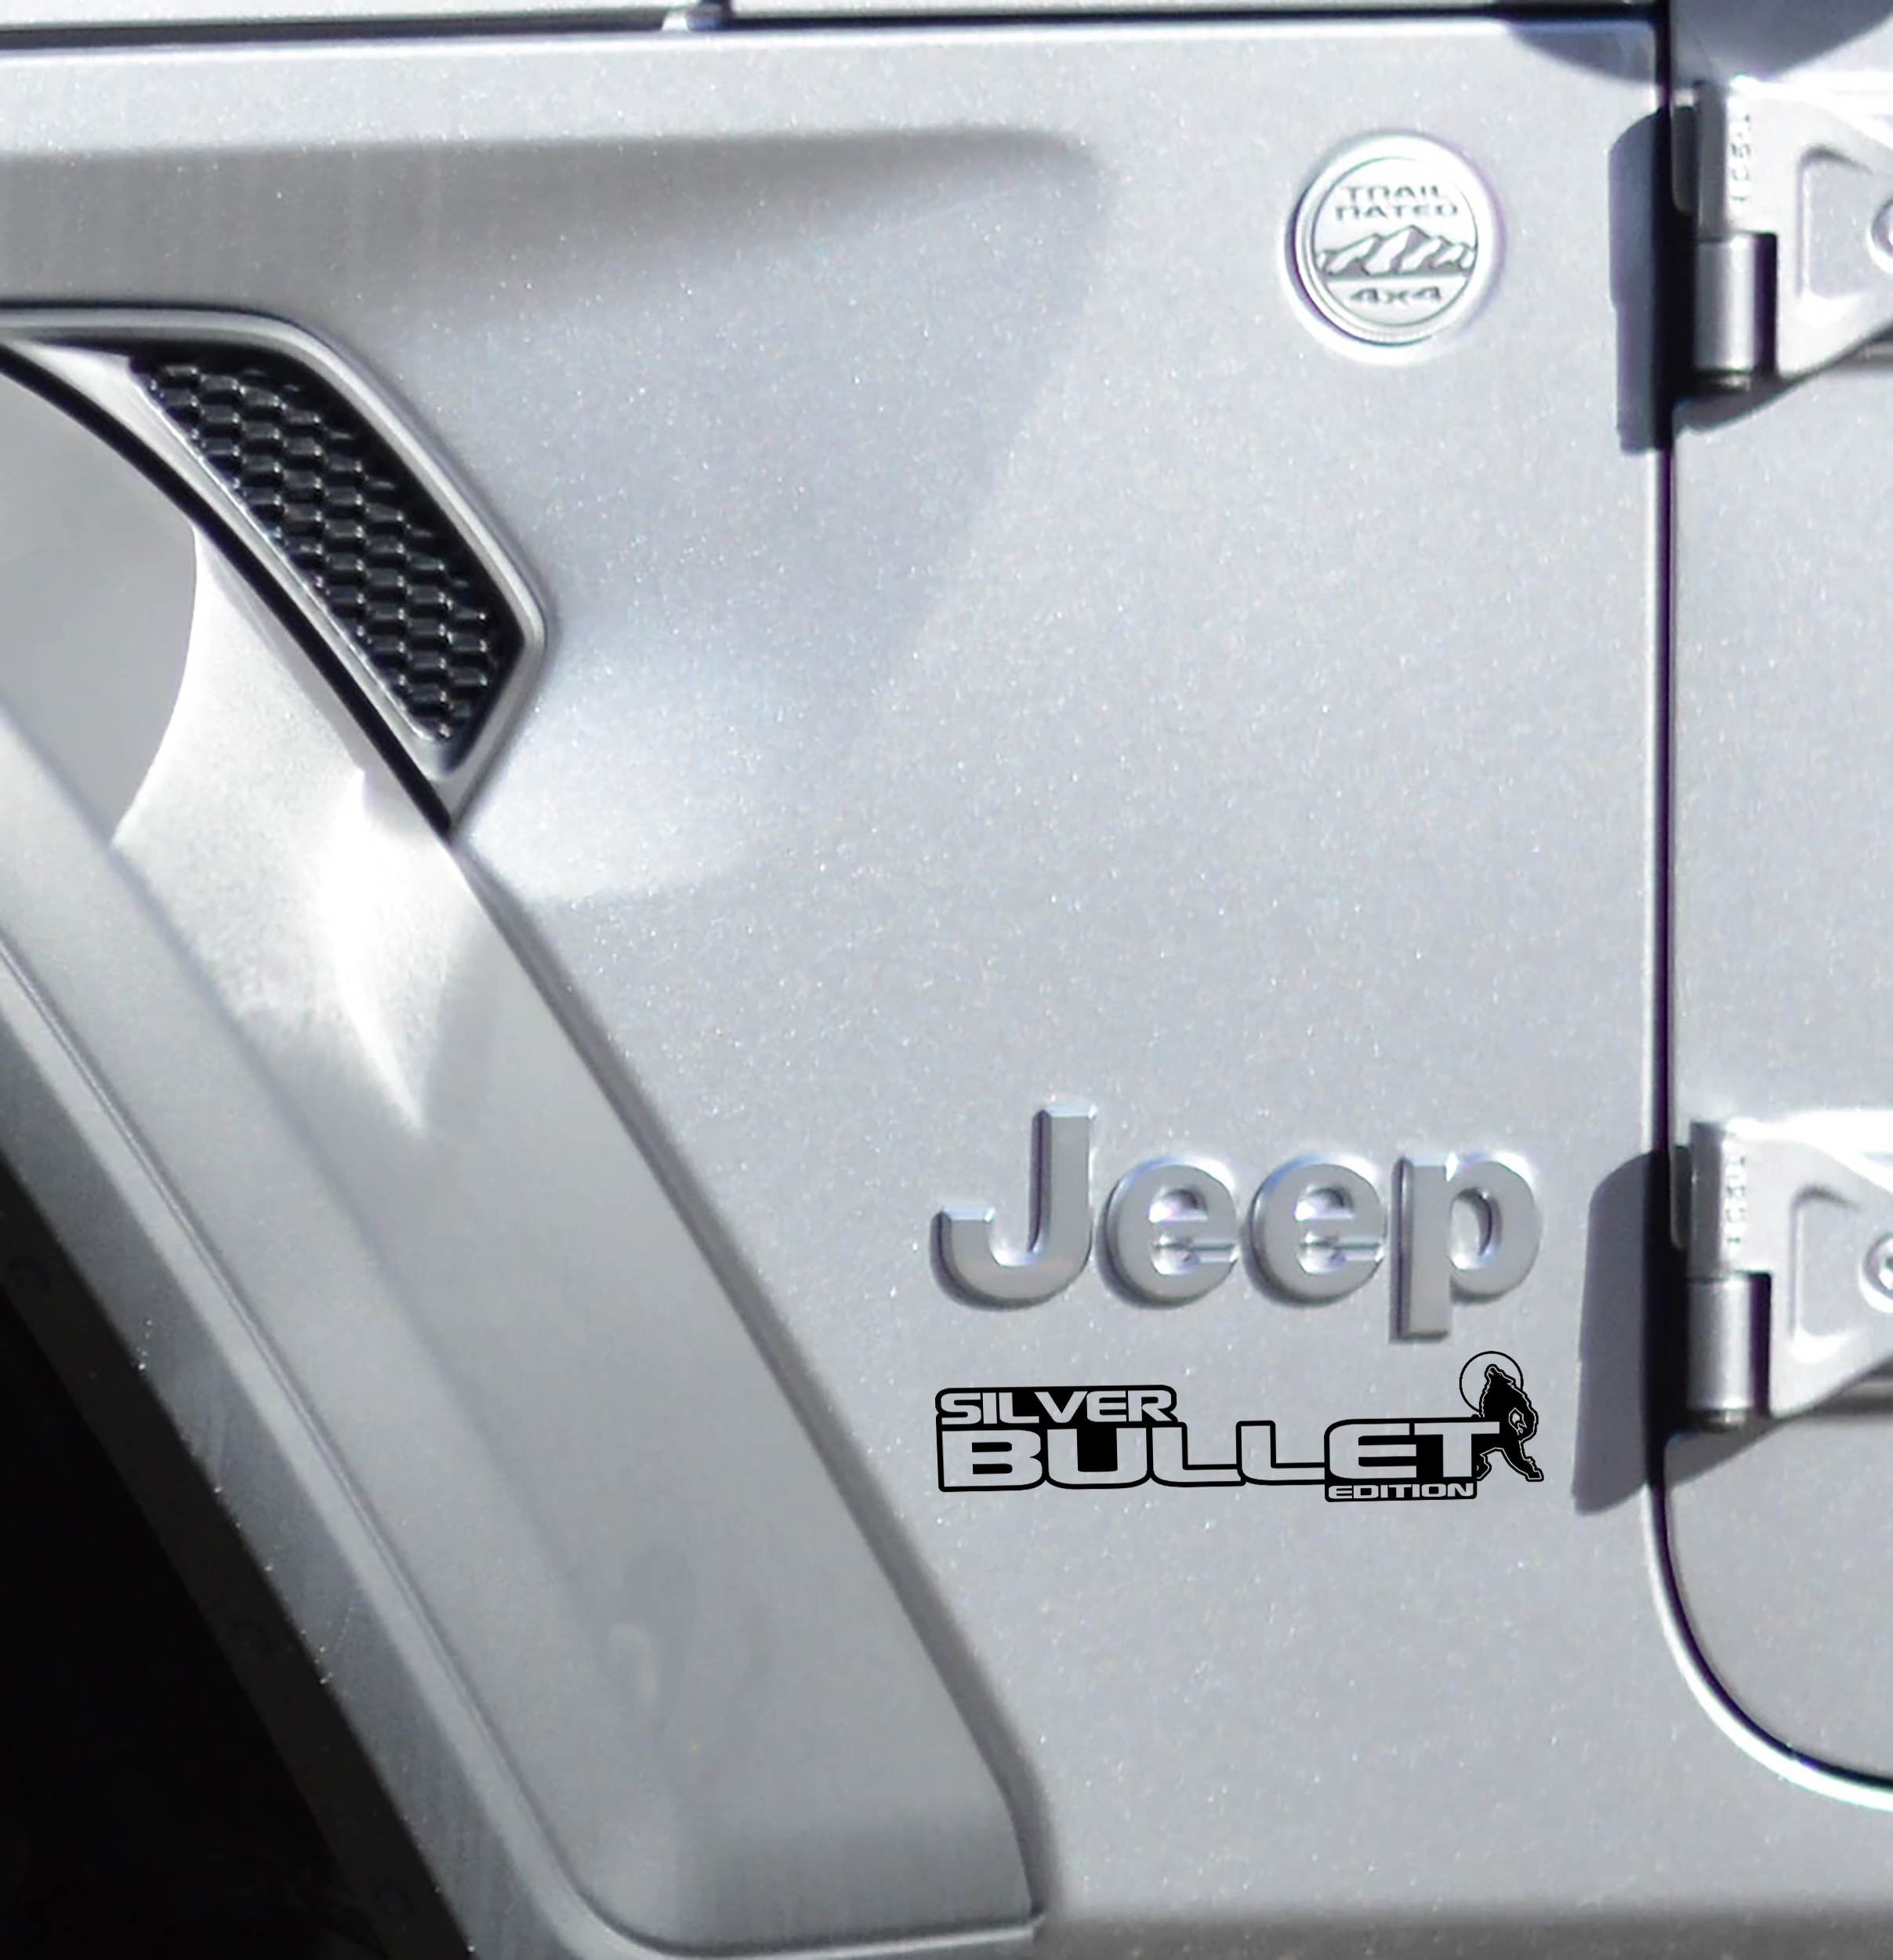 Fender Decals For Wrangler/Gladiator - JL/JT Silver Bullet Edition Decal (Pair)